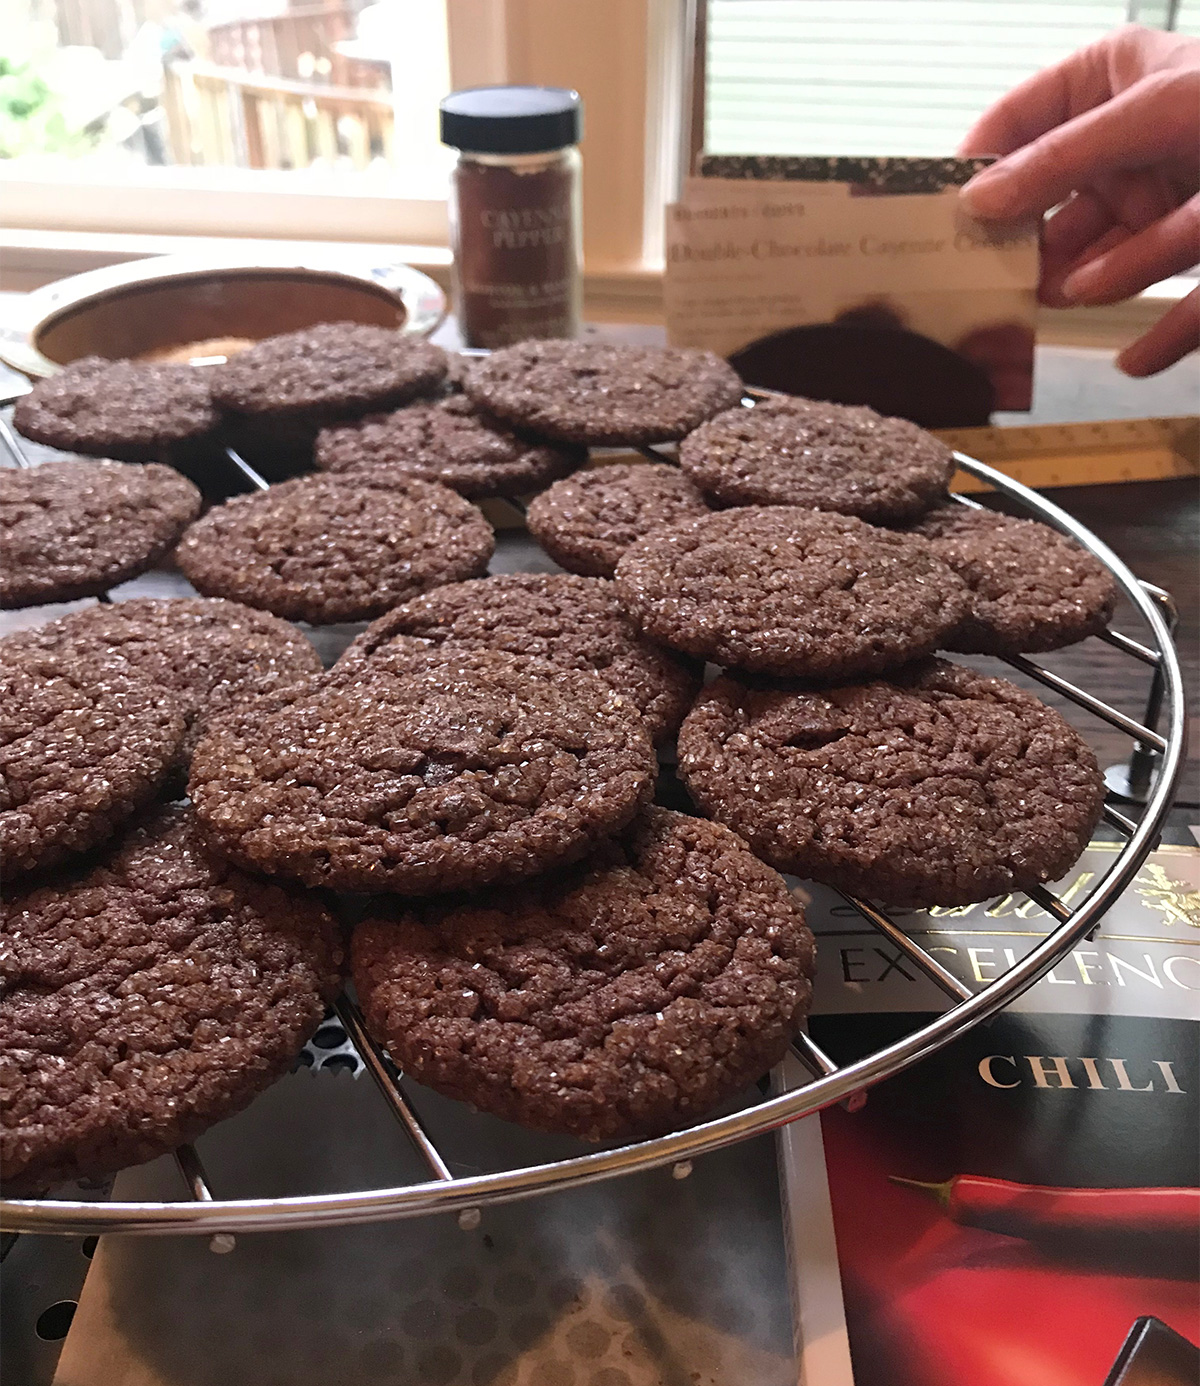 double-chocolate-cayenne-cookies-2.jpg